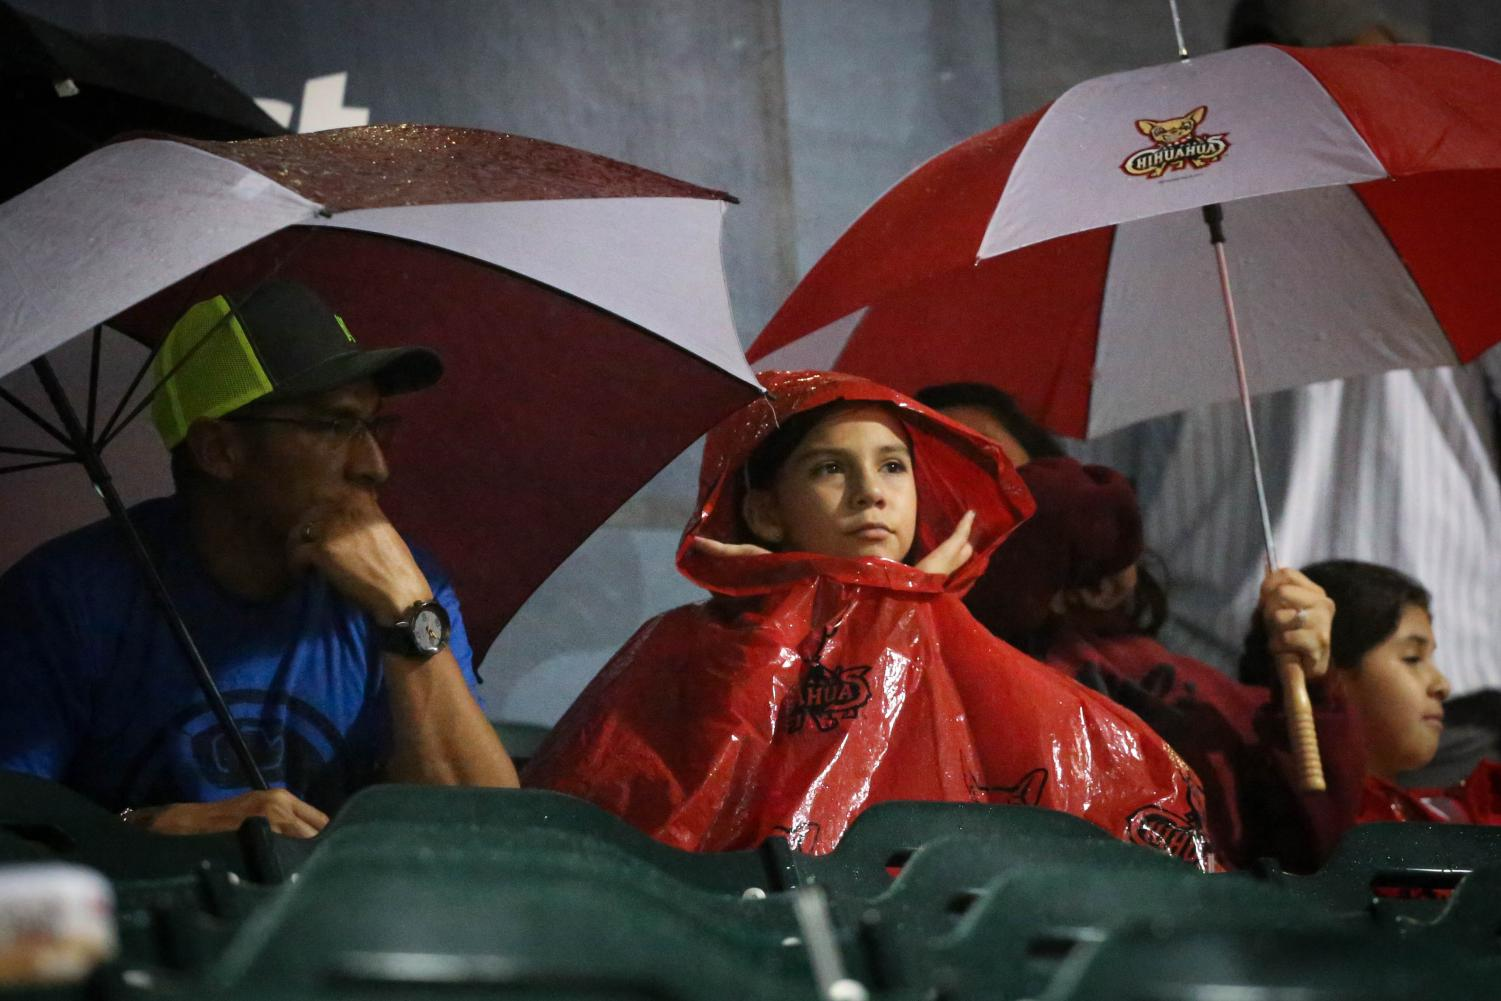 The+crowd+take+out+their+umbrellas+as+the+rain+comes+back+during+the+fourth+inning+at+the+delayed+game.+